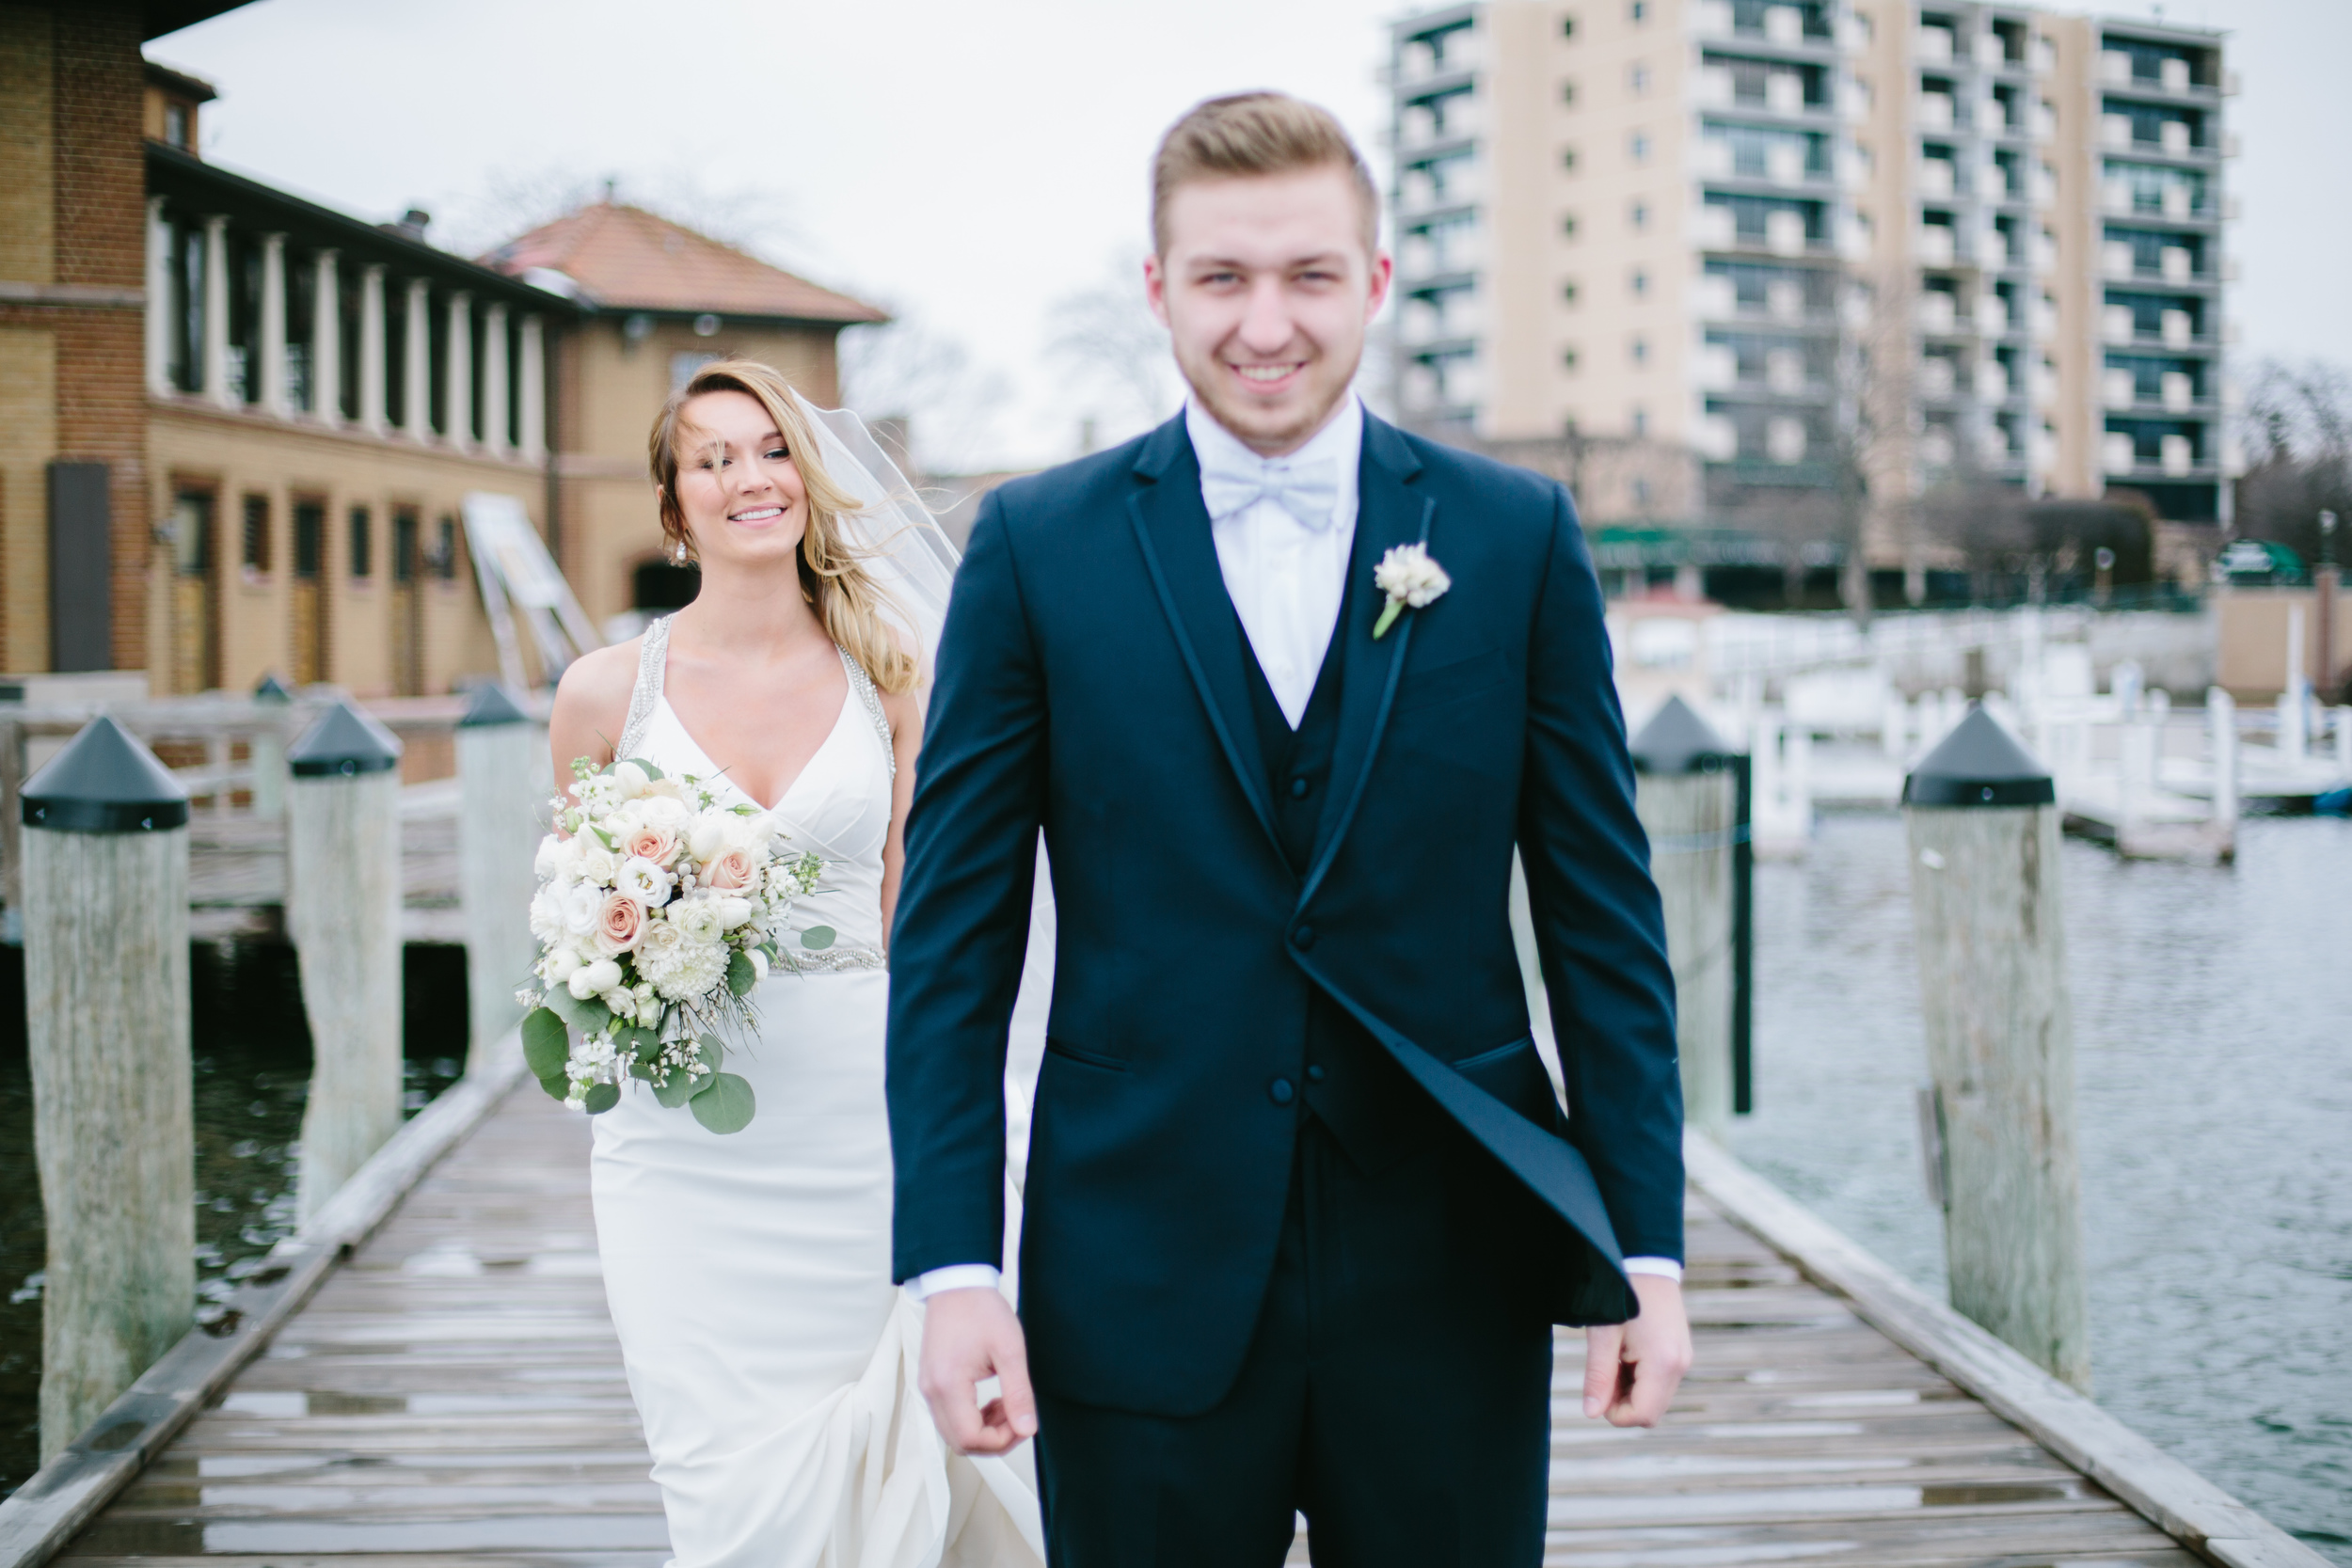 Sam and Jared_First Look (12 of 117).jpg